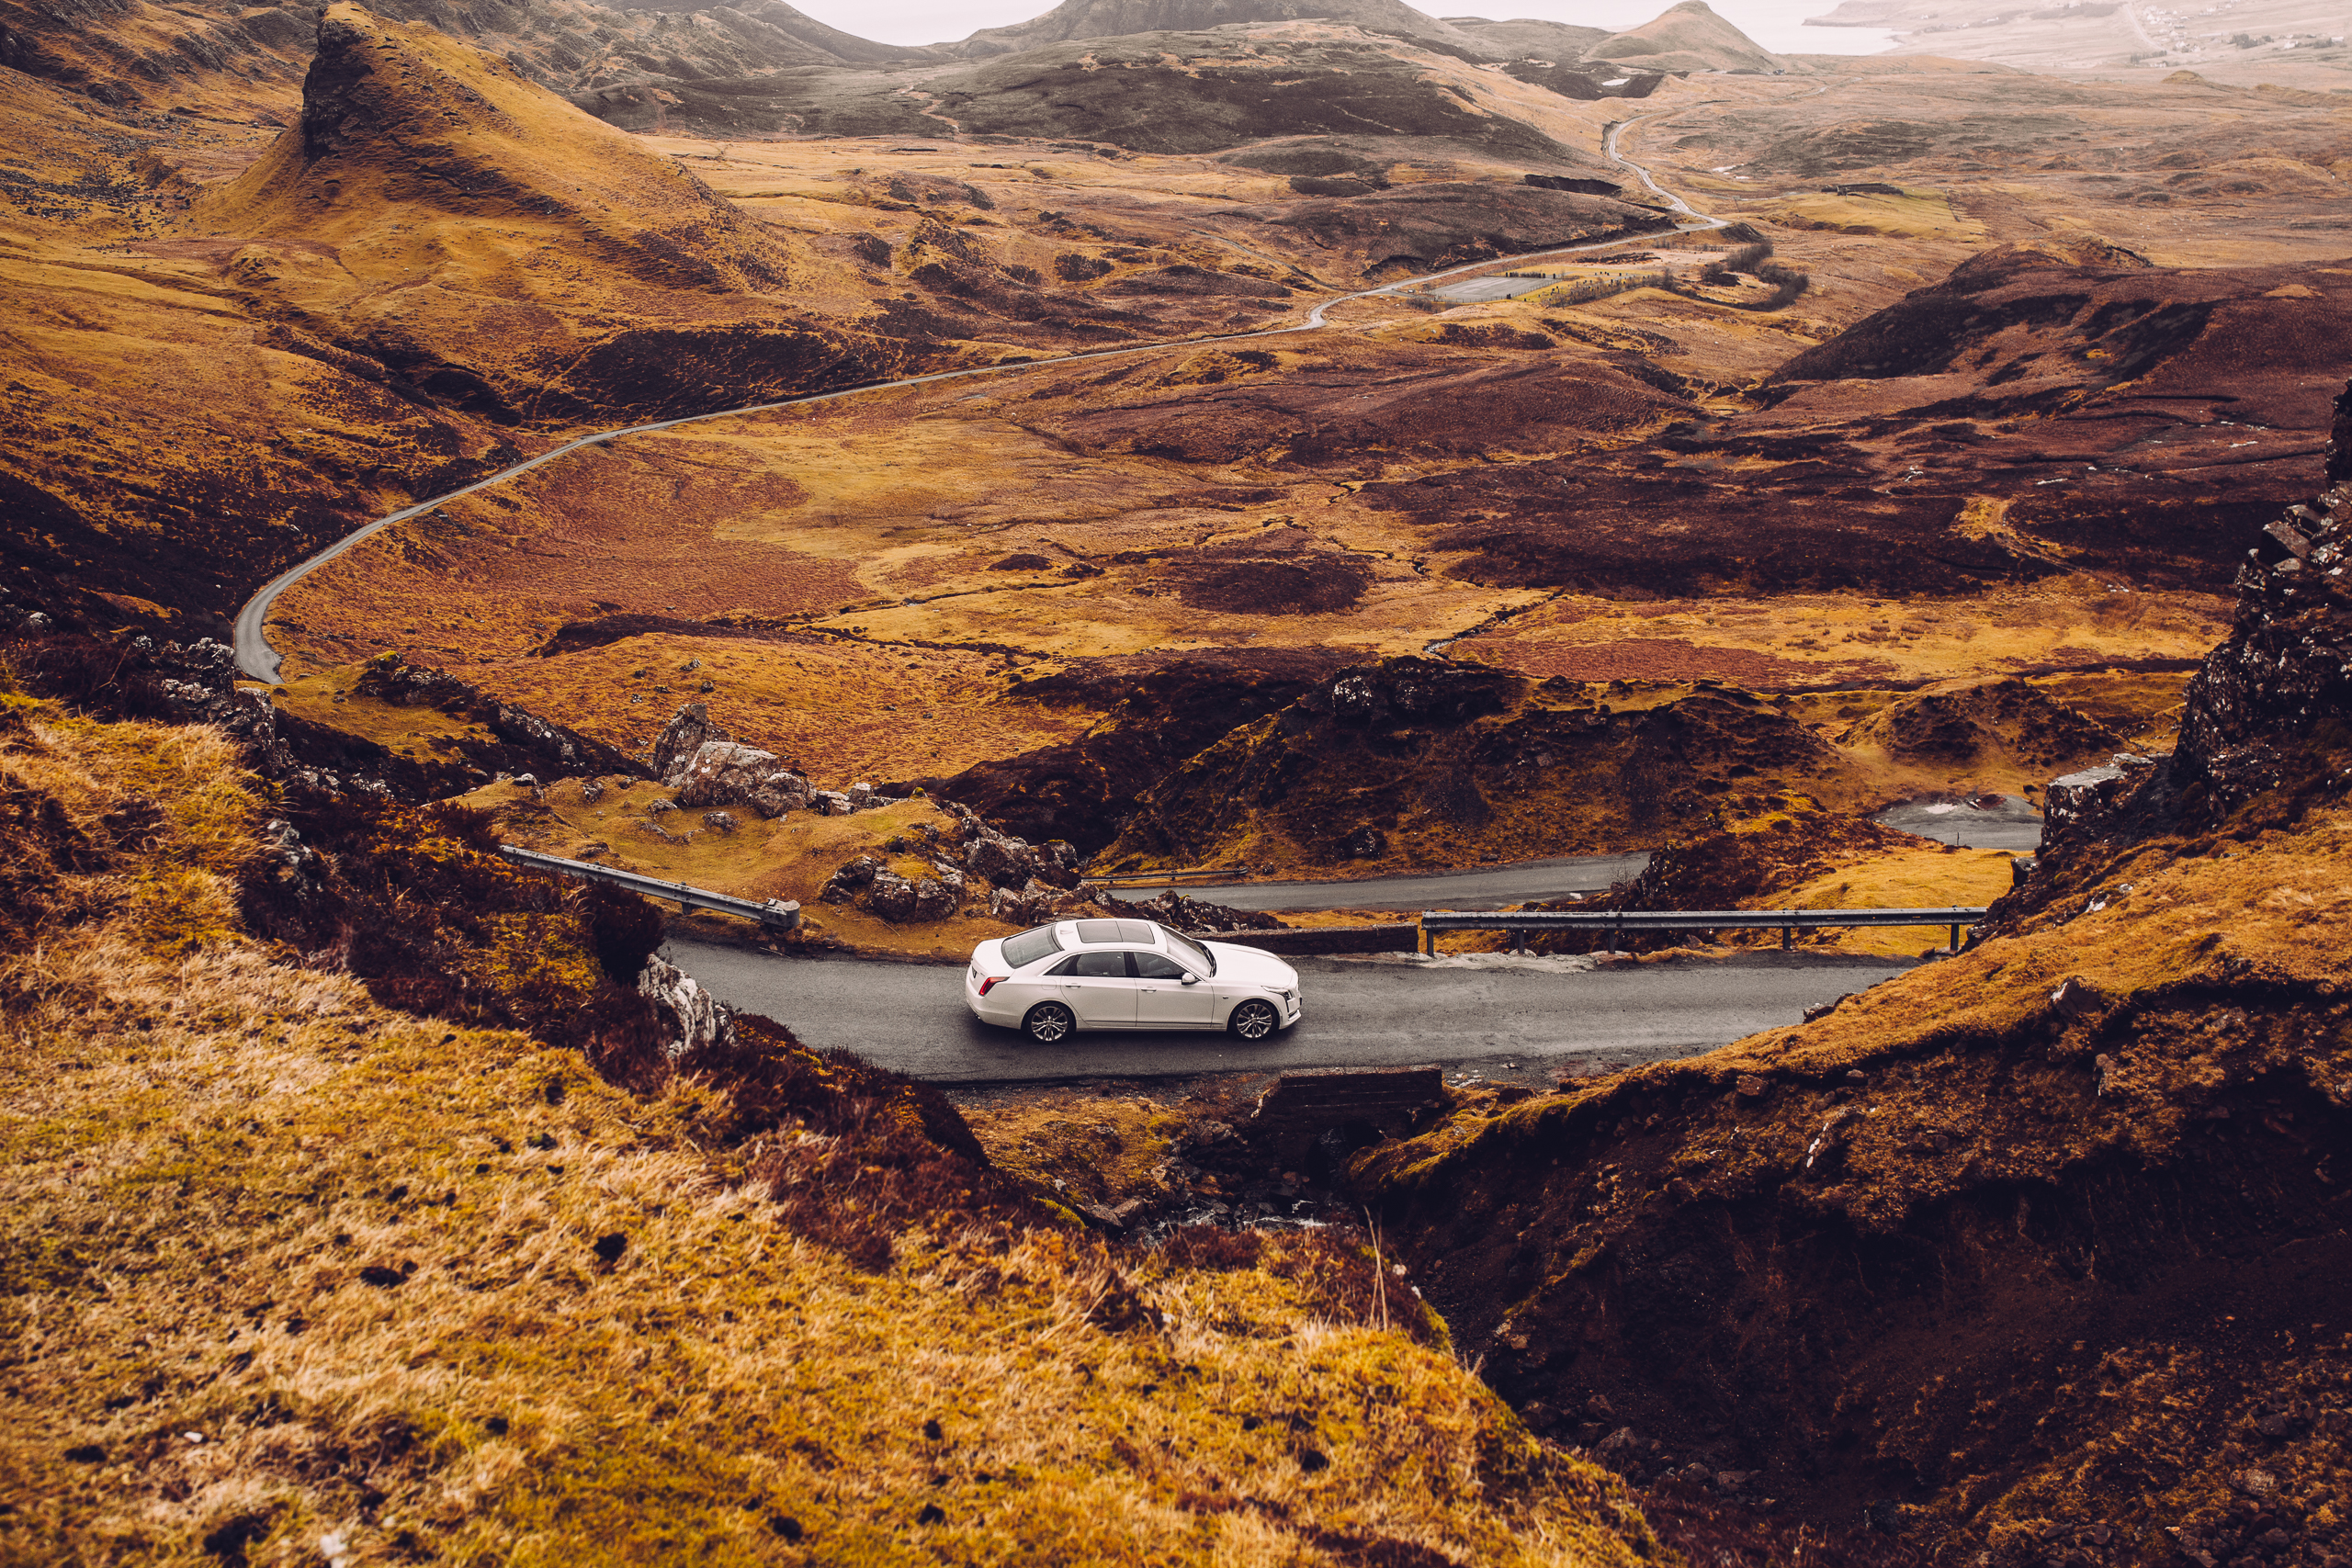 Cadillac CT6 Shooting Quiraing Schottland Roadtrip